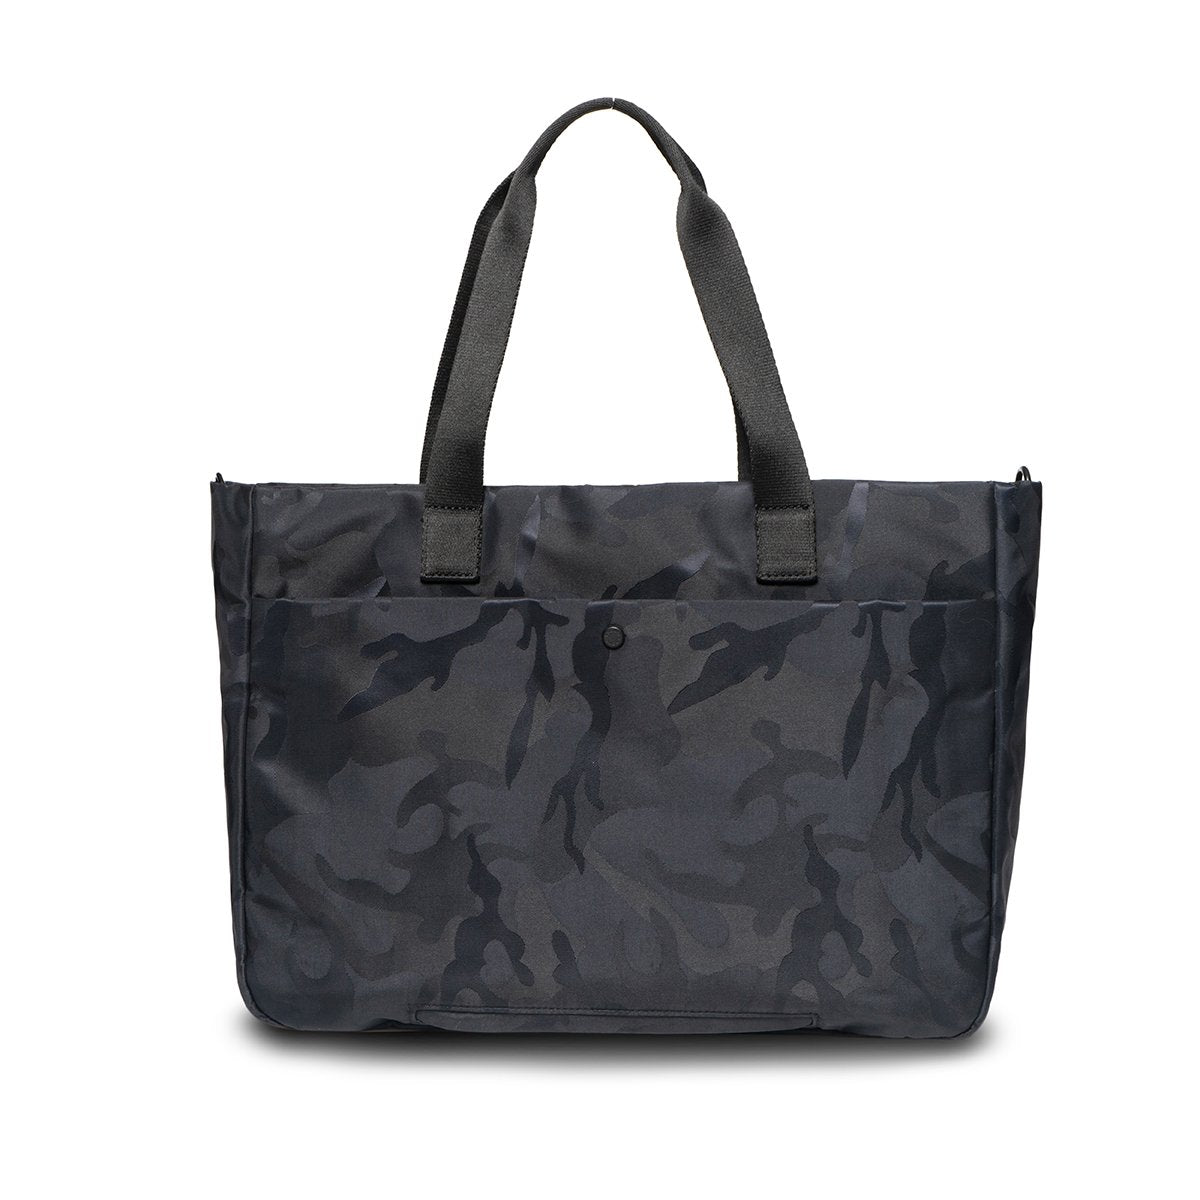 "KNOMO Cologne Tote From Back 14"" -  Black Camouflage 